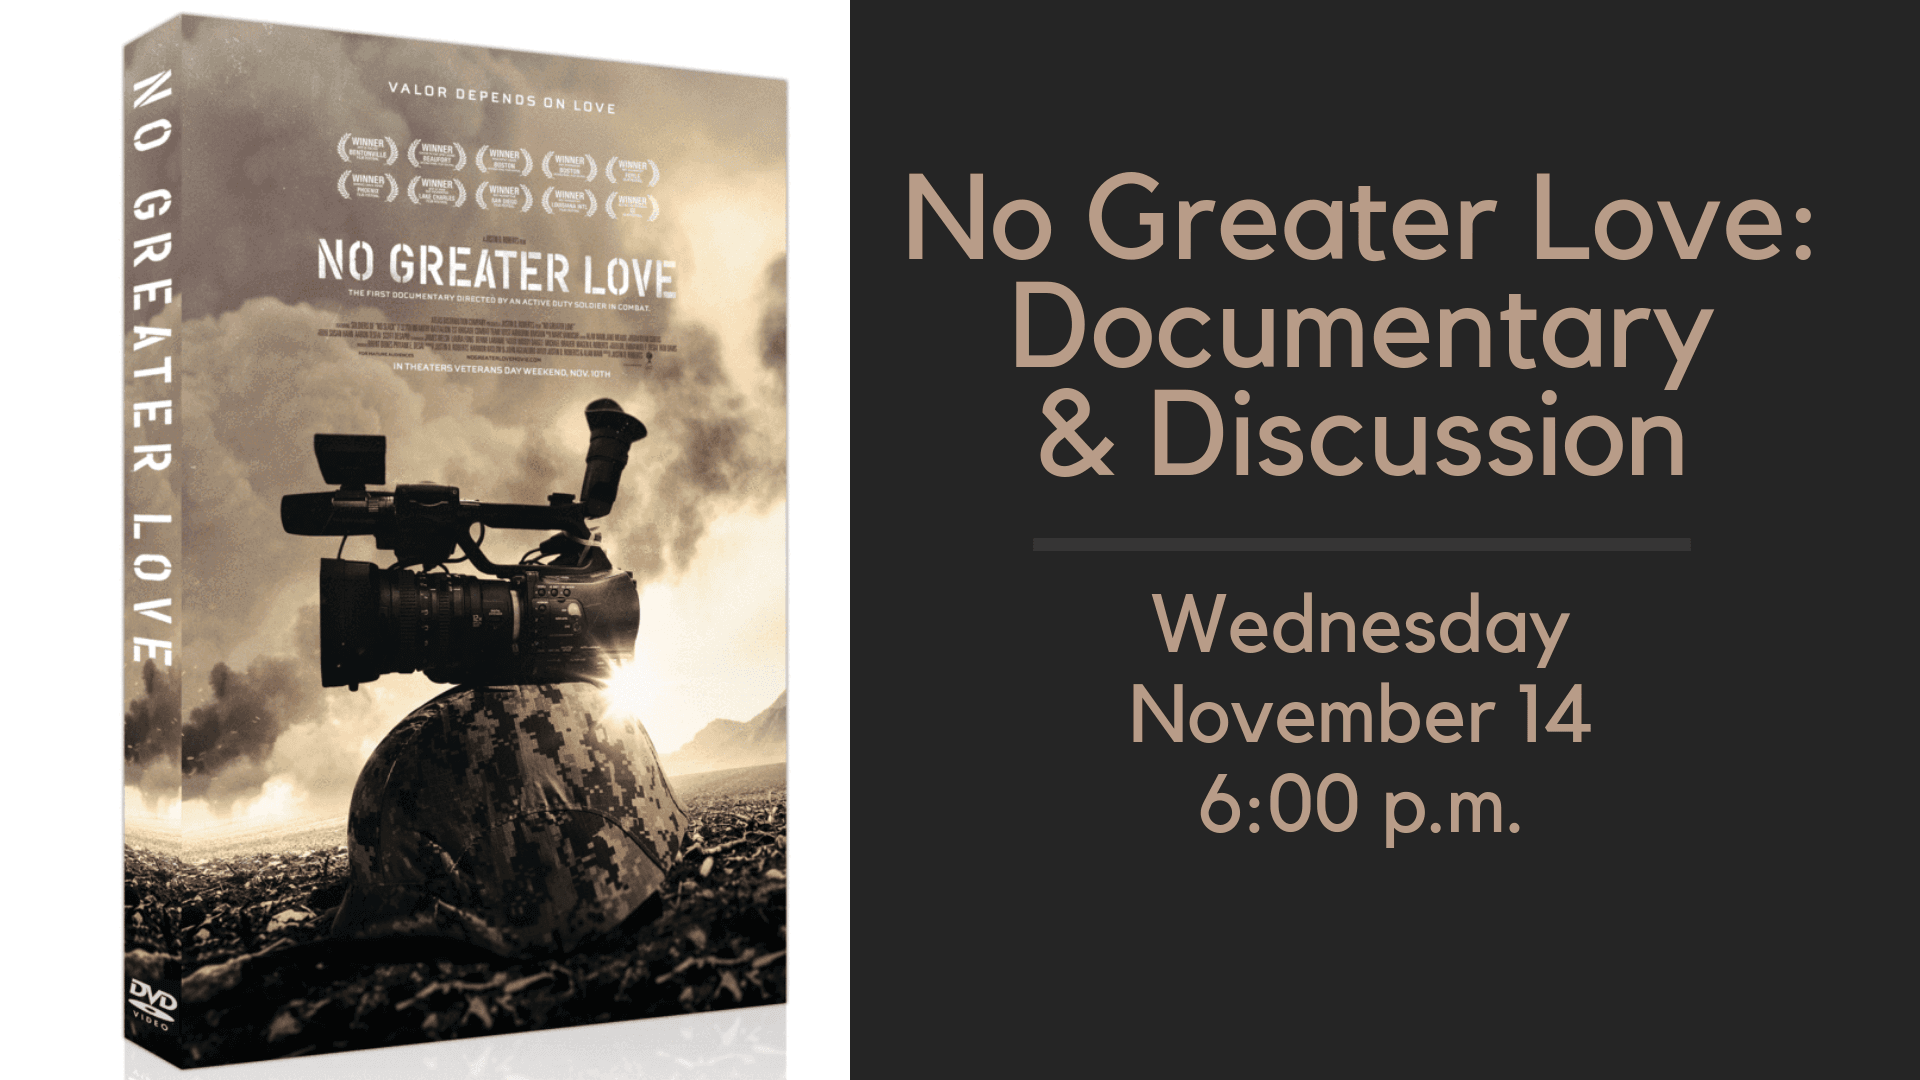 No Greater Love dvd cover with Image of soldiers